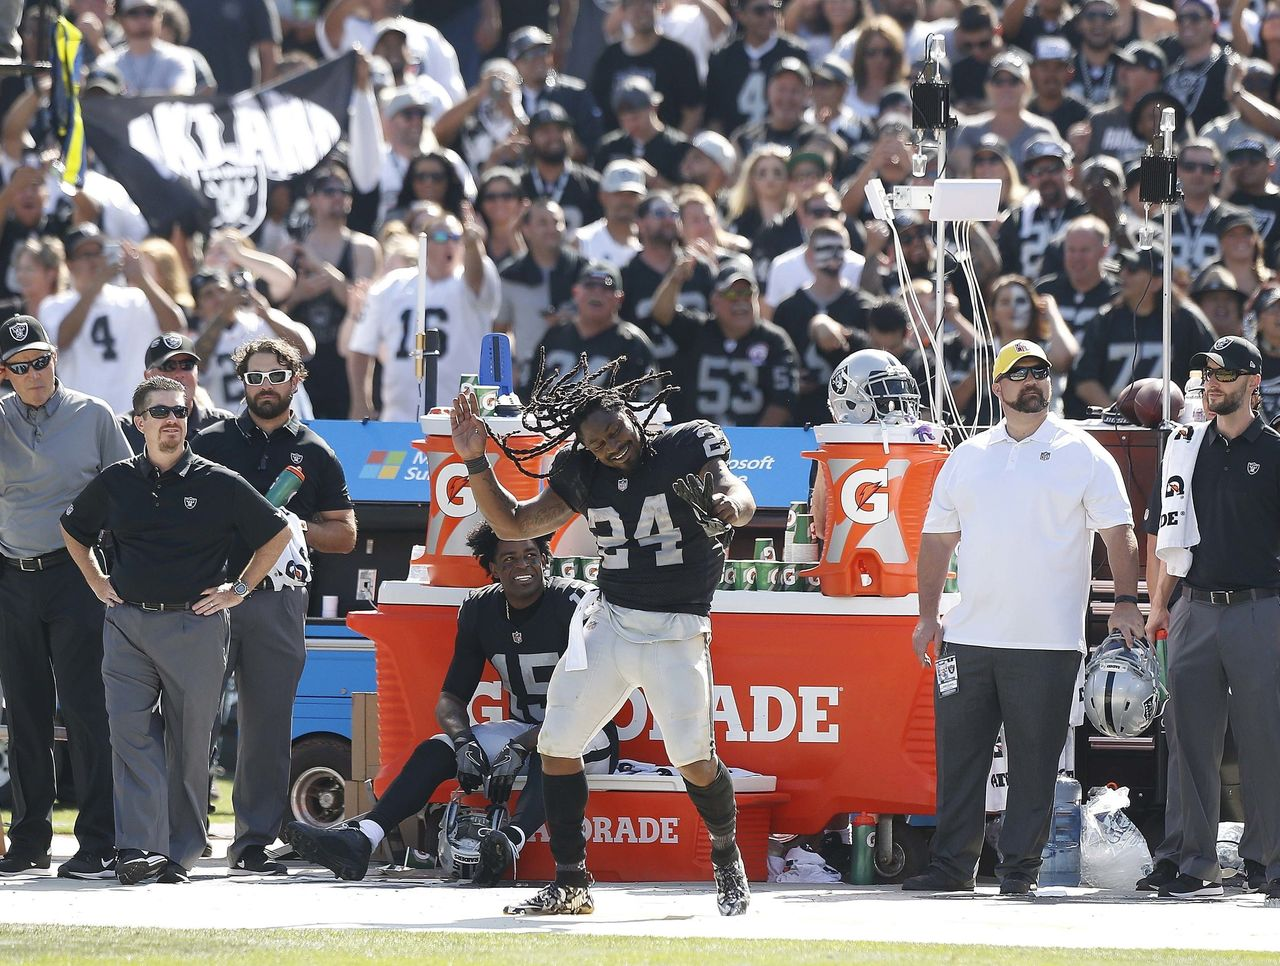 Cropped 2017 09 18t041330z 35027739 nocid rtrmadp 3 nfl new york jets at oakland raiders